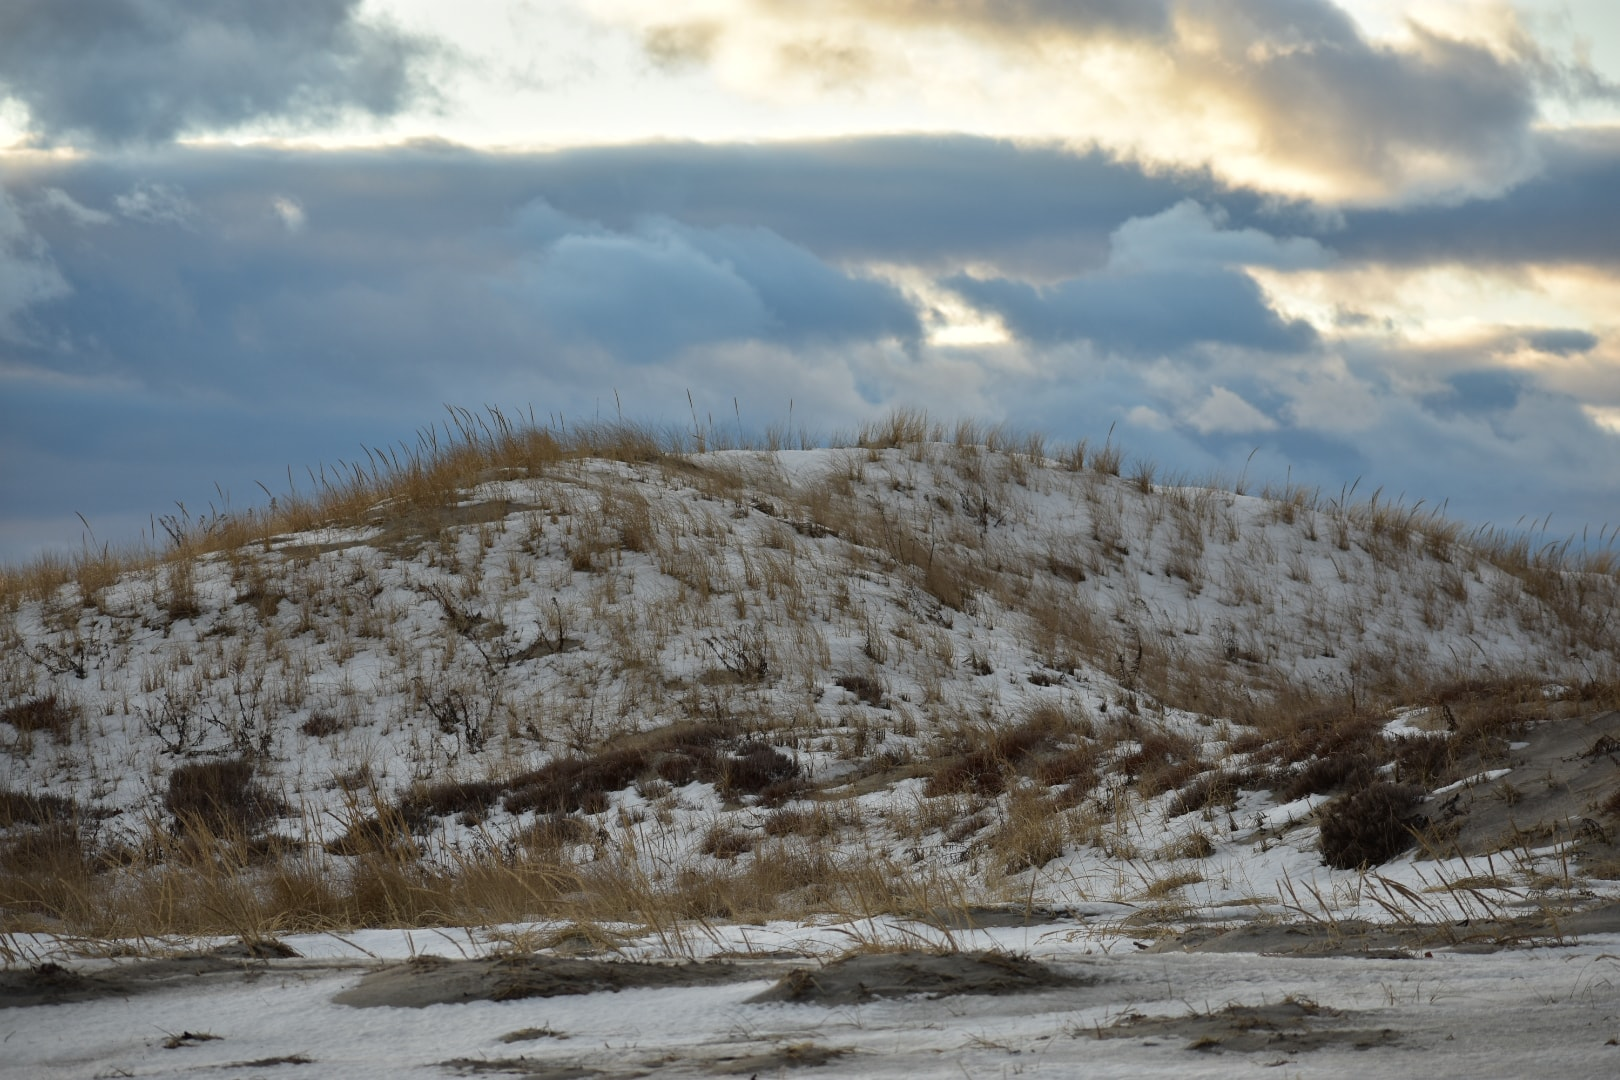 Ipswich dunes at Castle Neck. Photo by Sharon Scarlata